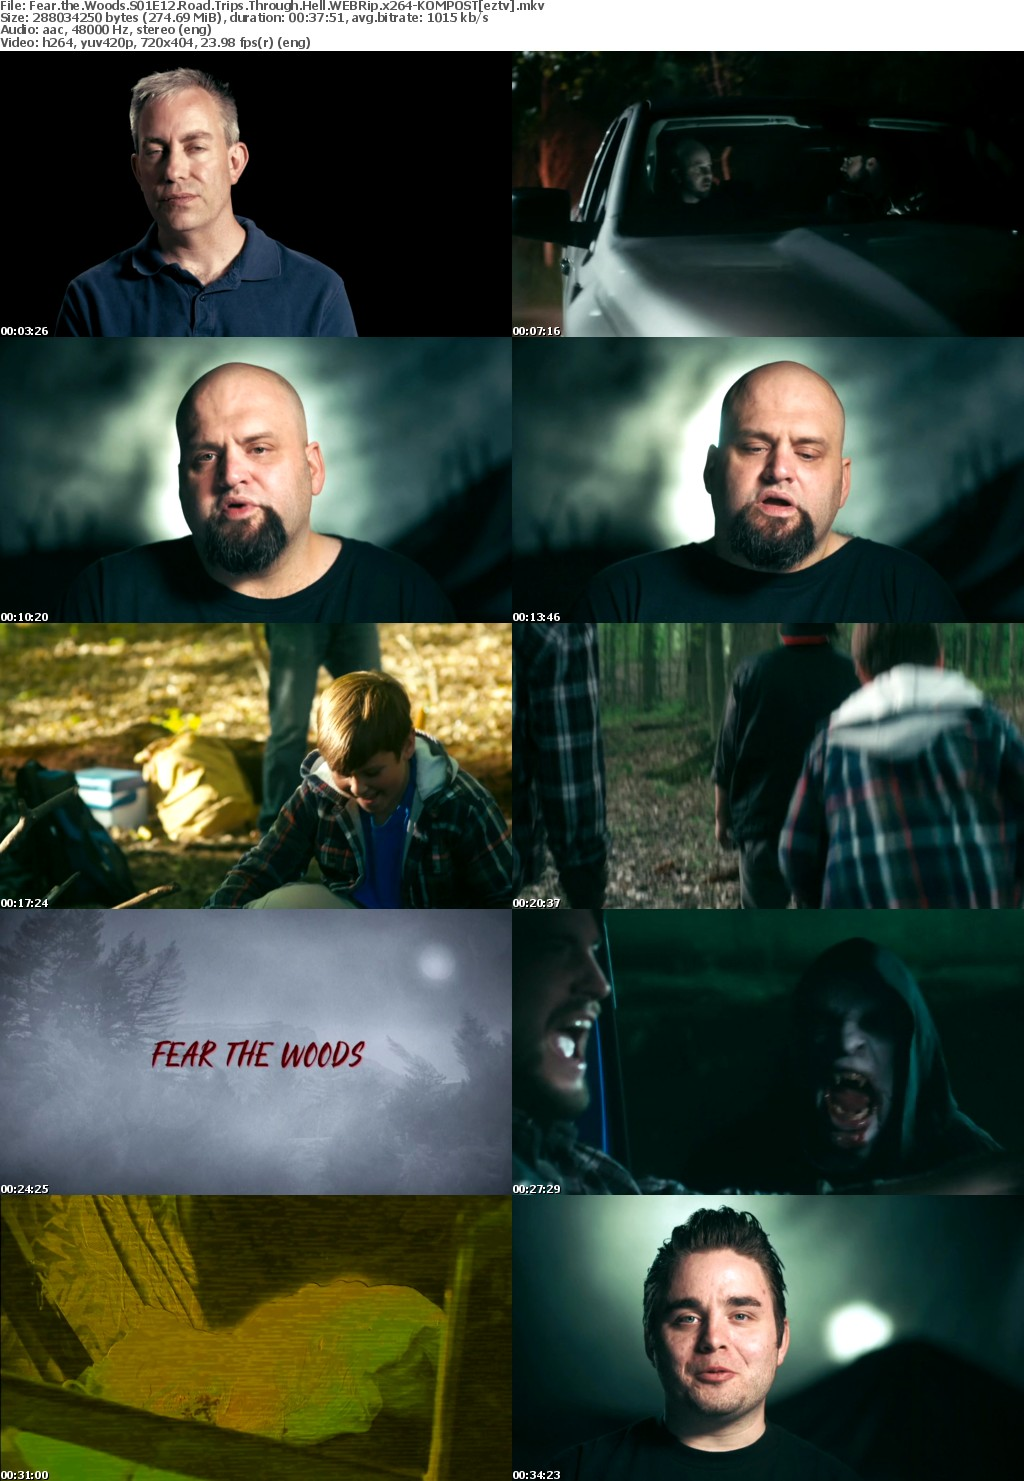 Fear the woods s01e12 road trips through hell webrip x264  kompost. Скриншот №1